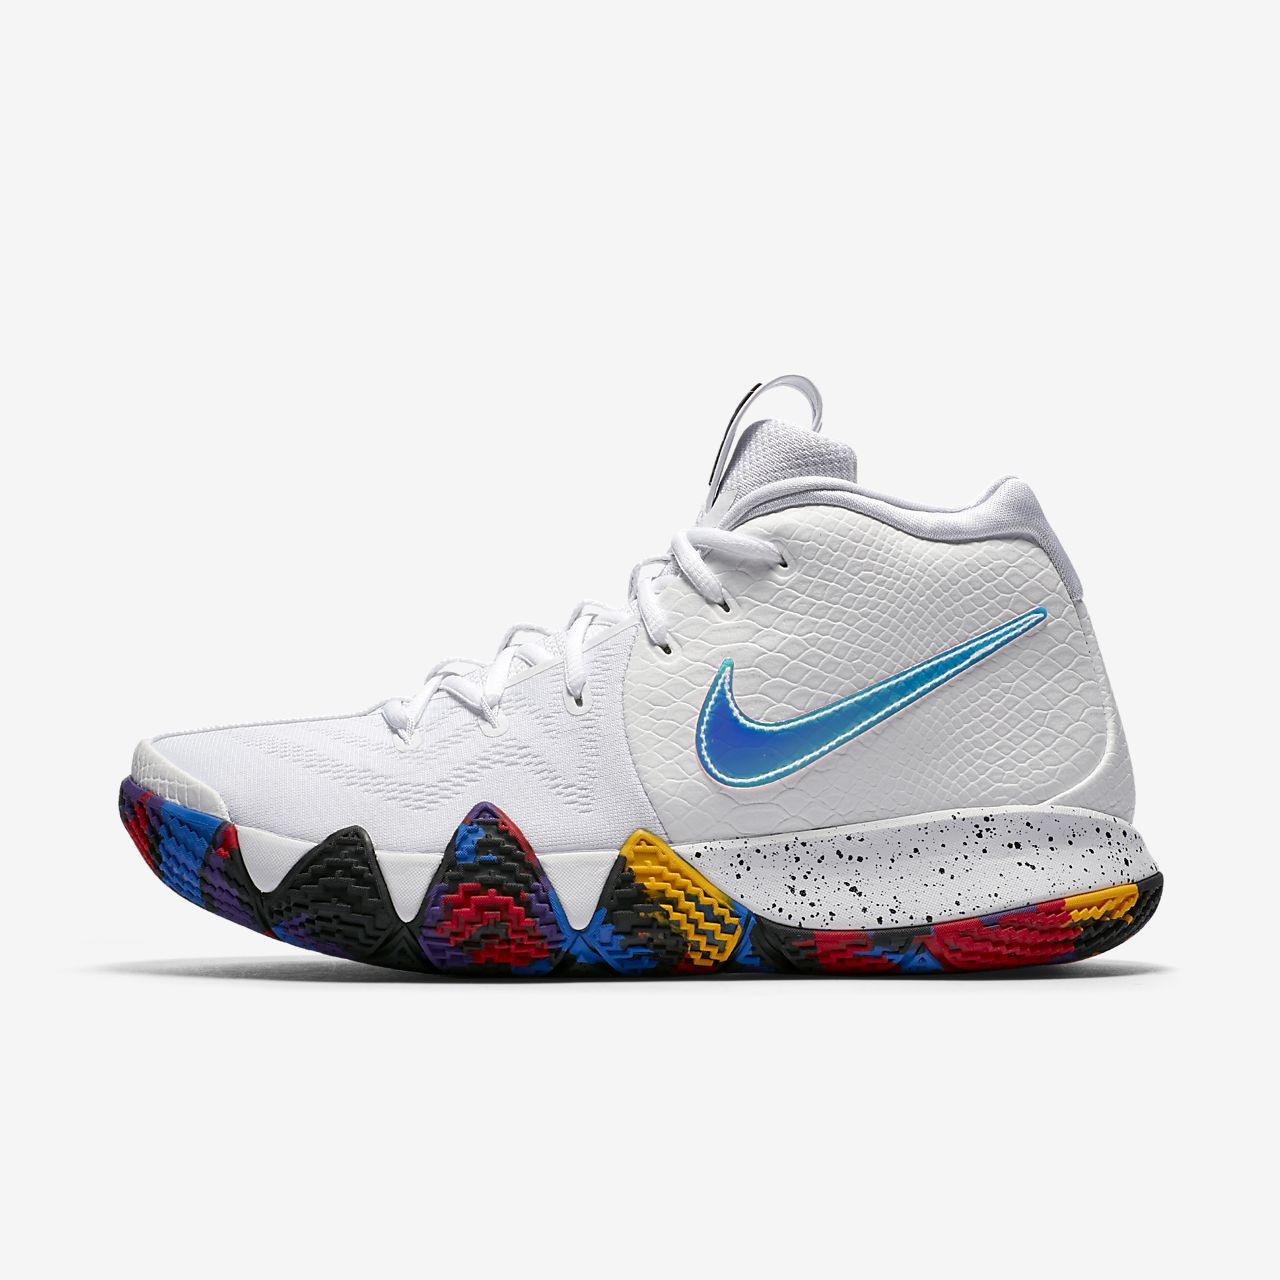 wholesale dealer 4f297 83b01 Kyrie 4 'The Moment' Basketball Shoe